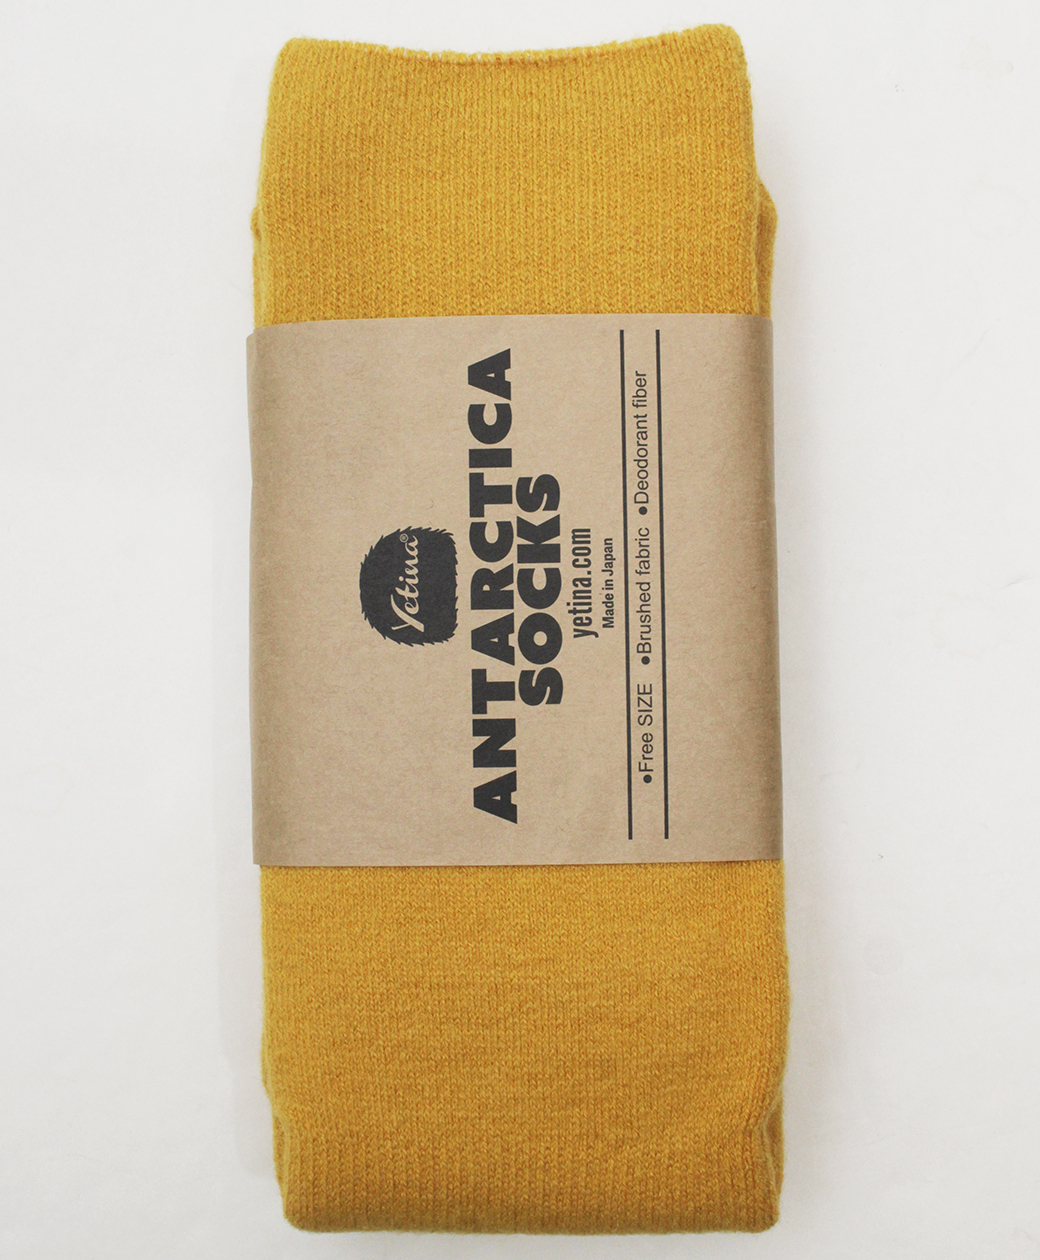 yetina Antarctica Socks(chrome yellow)